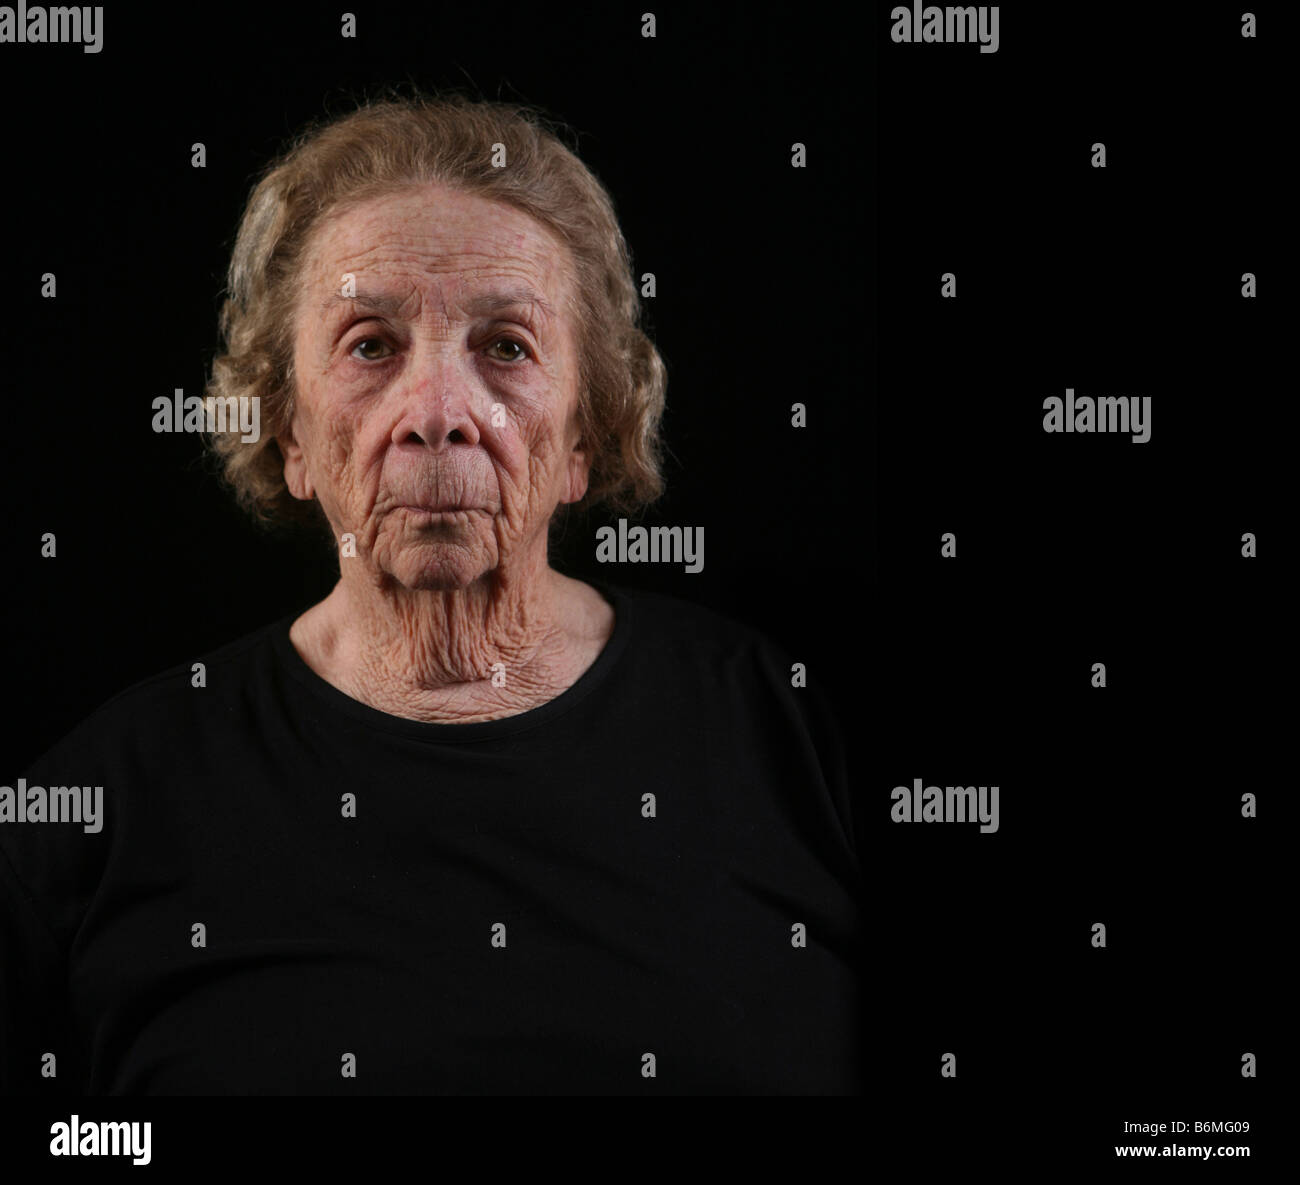 Senior Citizen Caucasian Woman in Deep Thought on Black Background - Stock Image